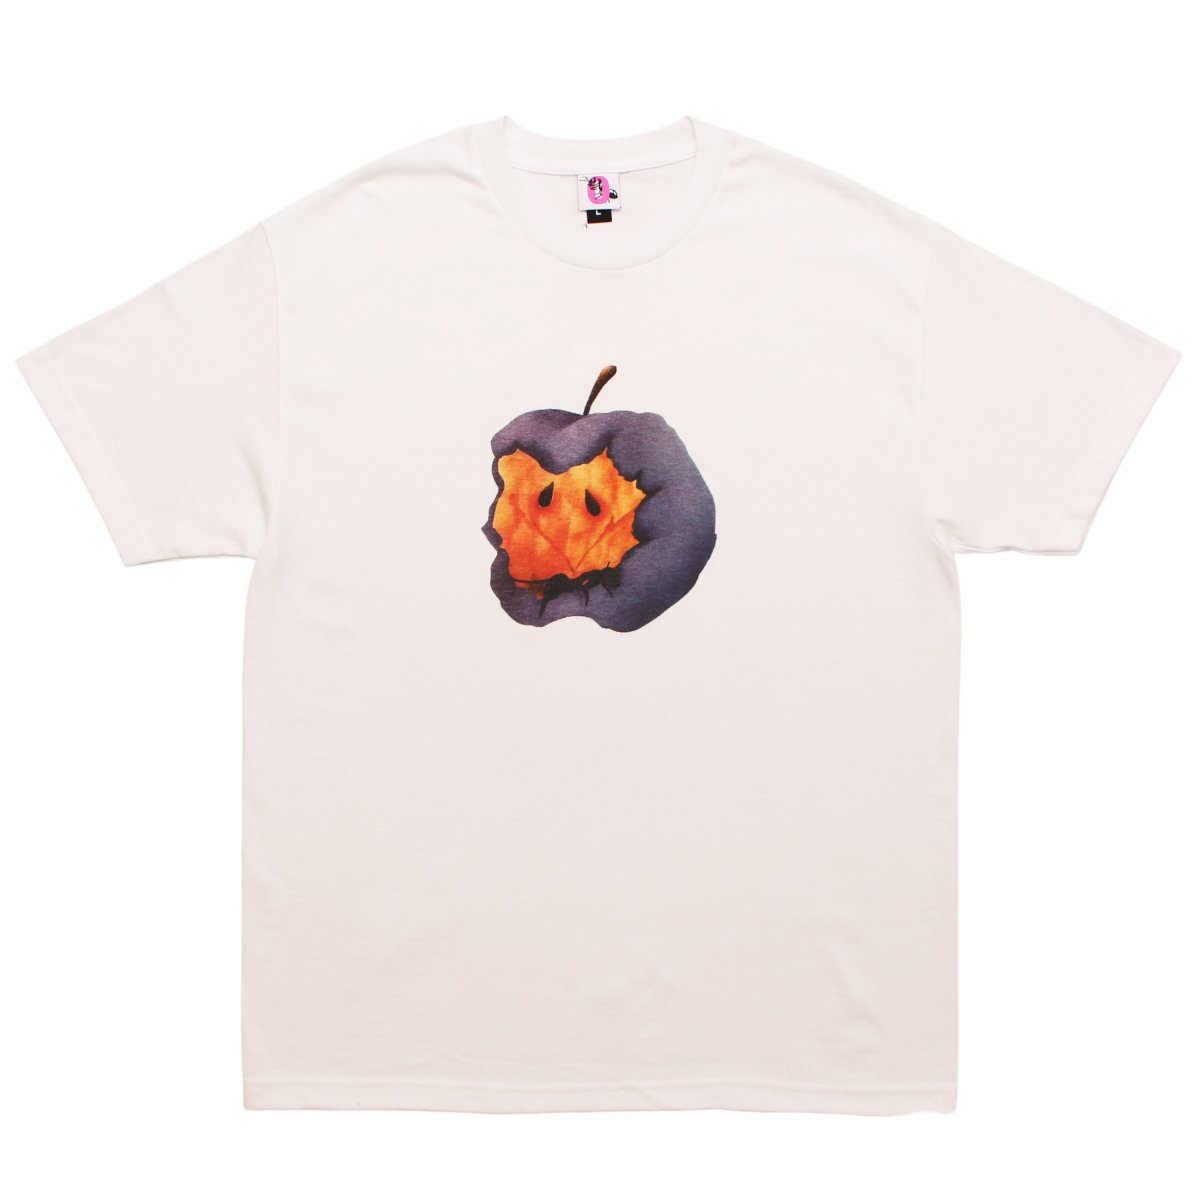 Big Ant x Hank Reavis Apple Tee